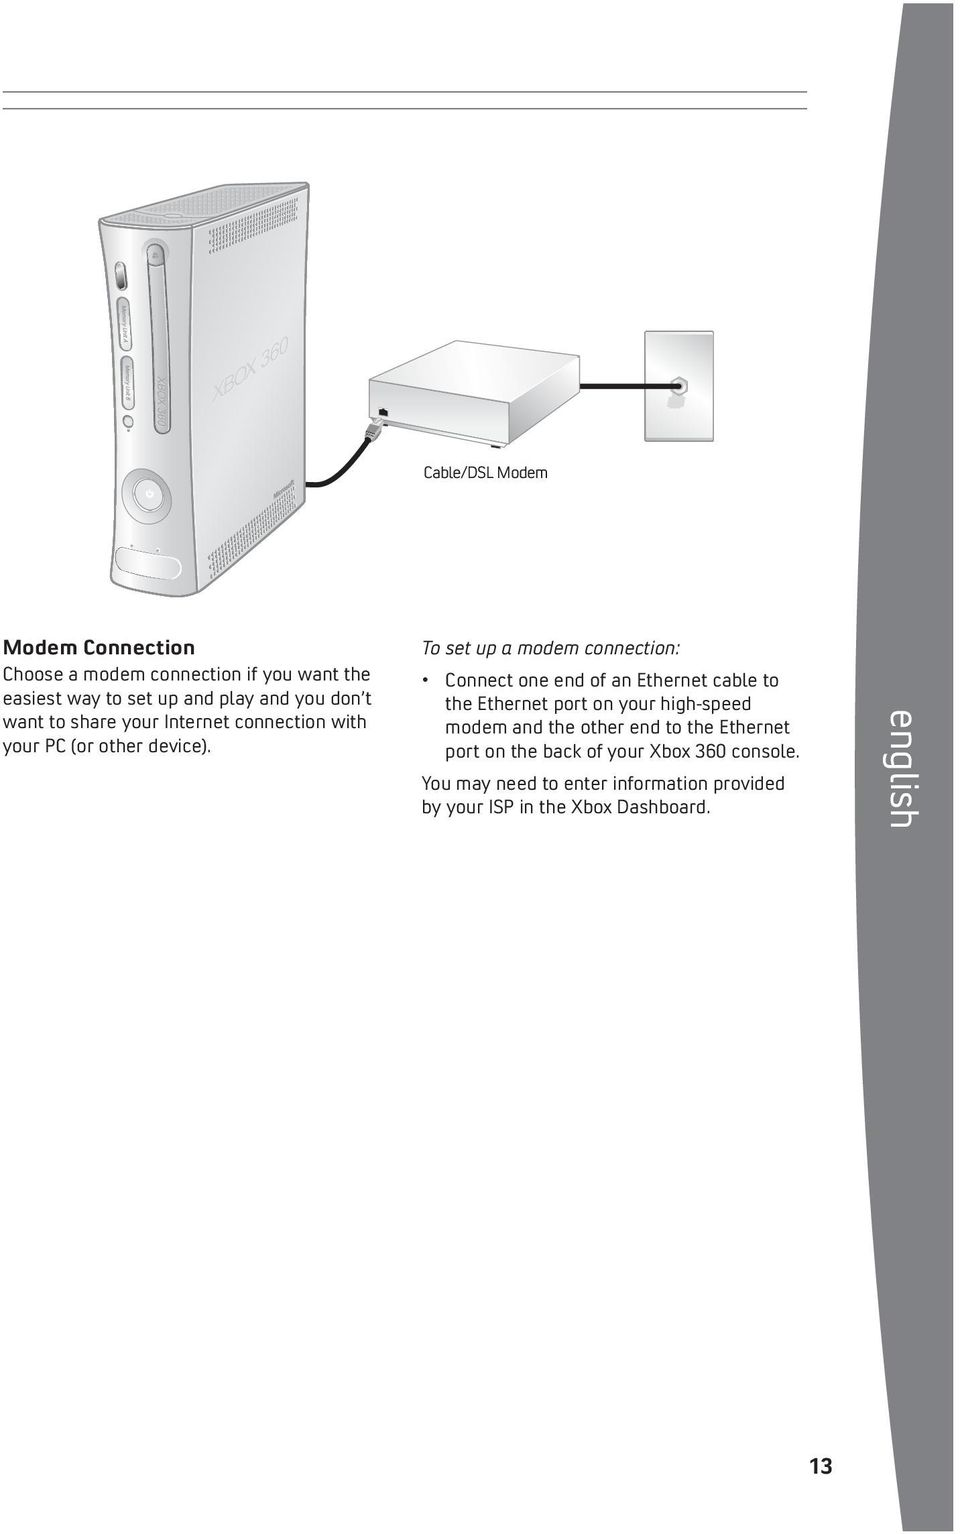 To set up a modem connection: Connect one end of an Ethernet cable to the Ethernet port on your high-speed modem and